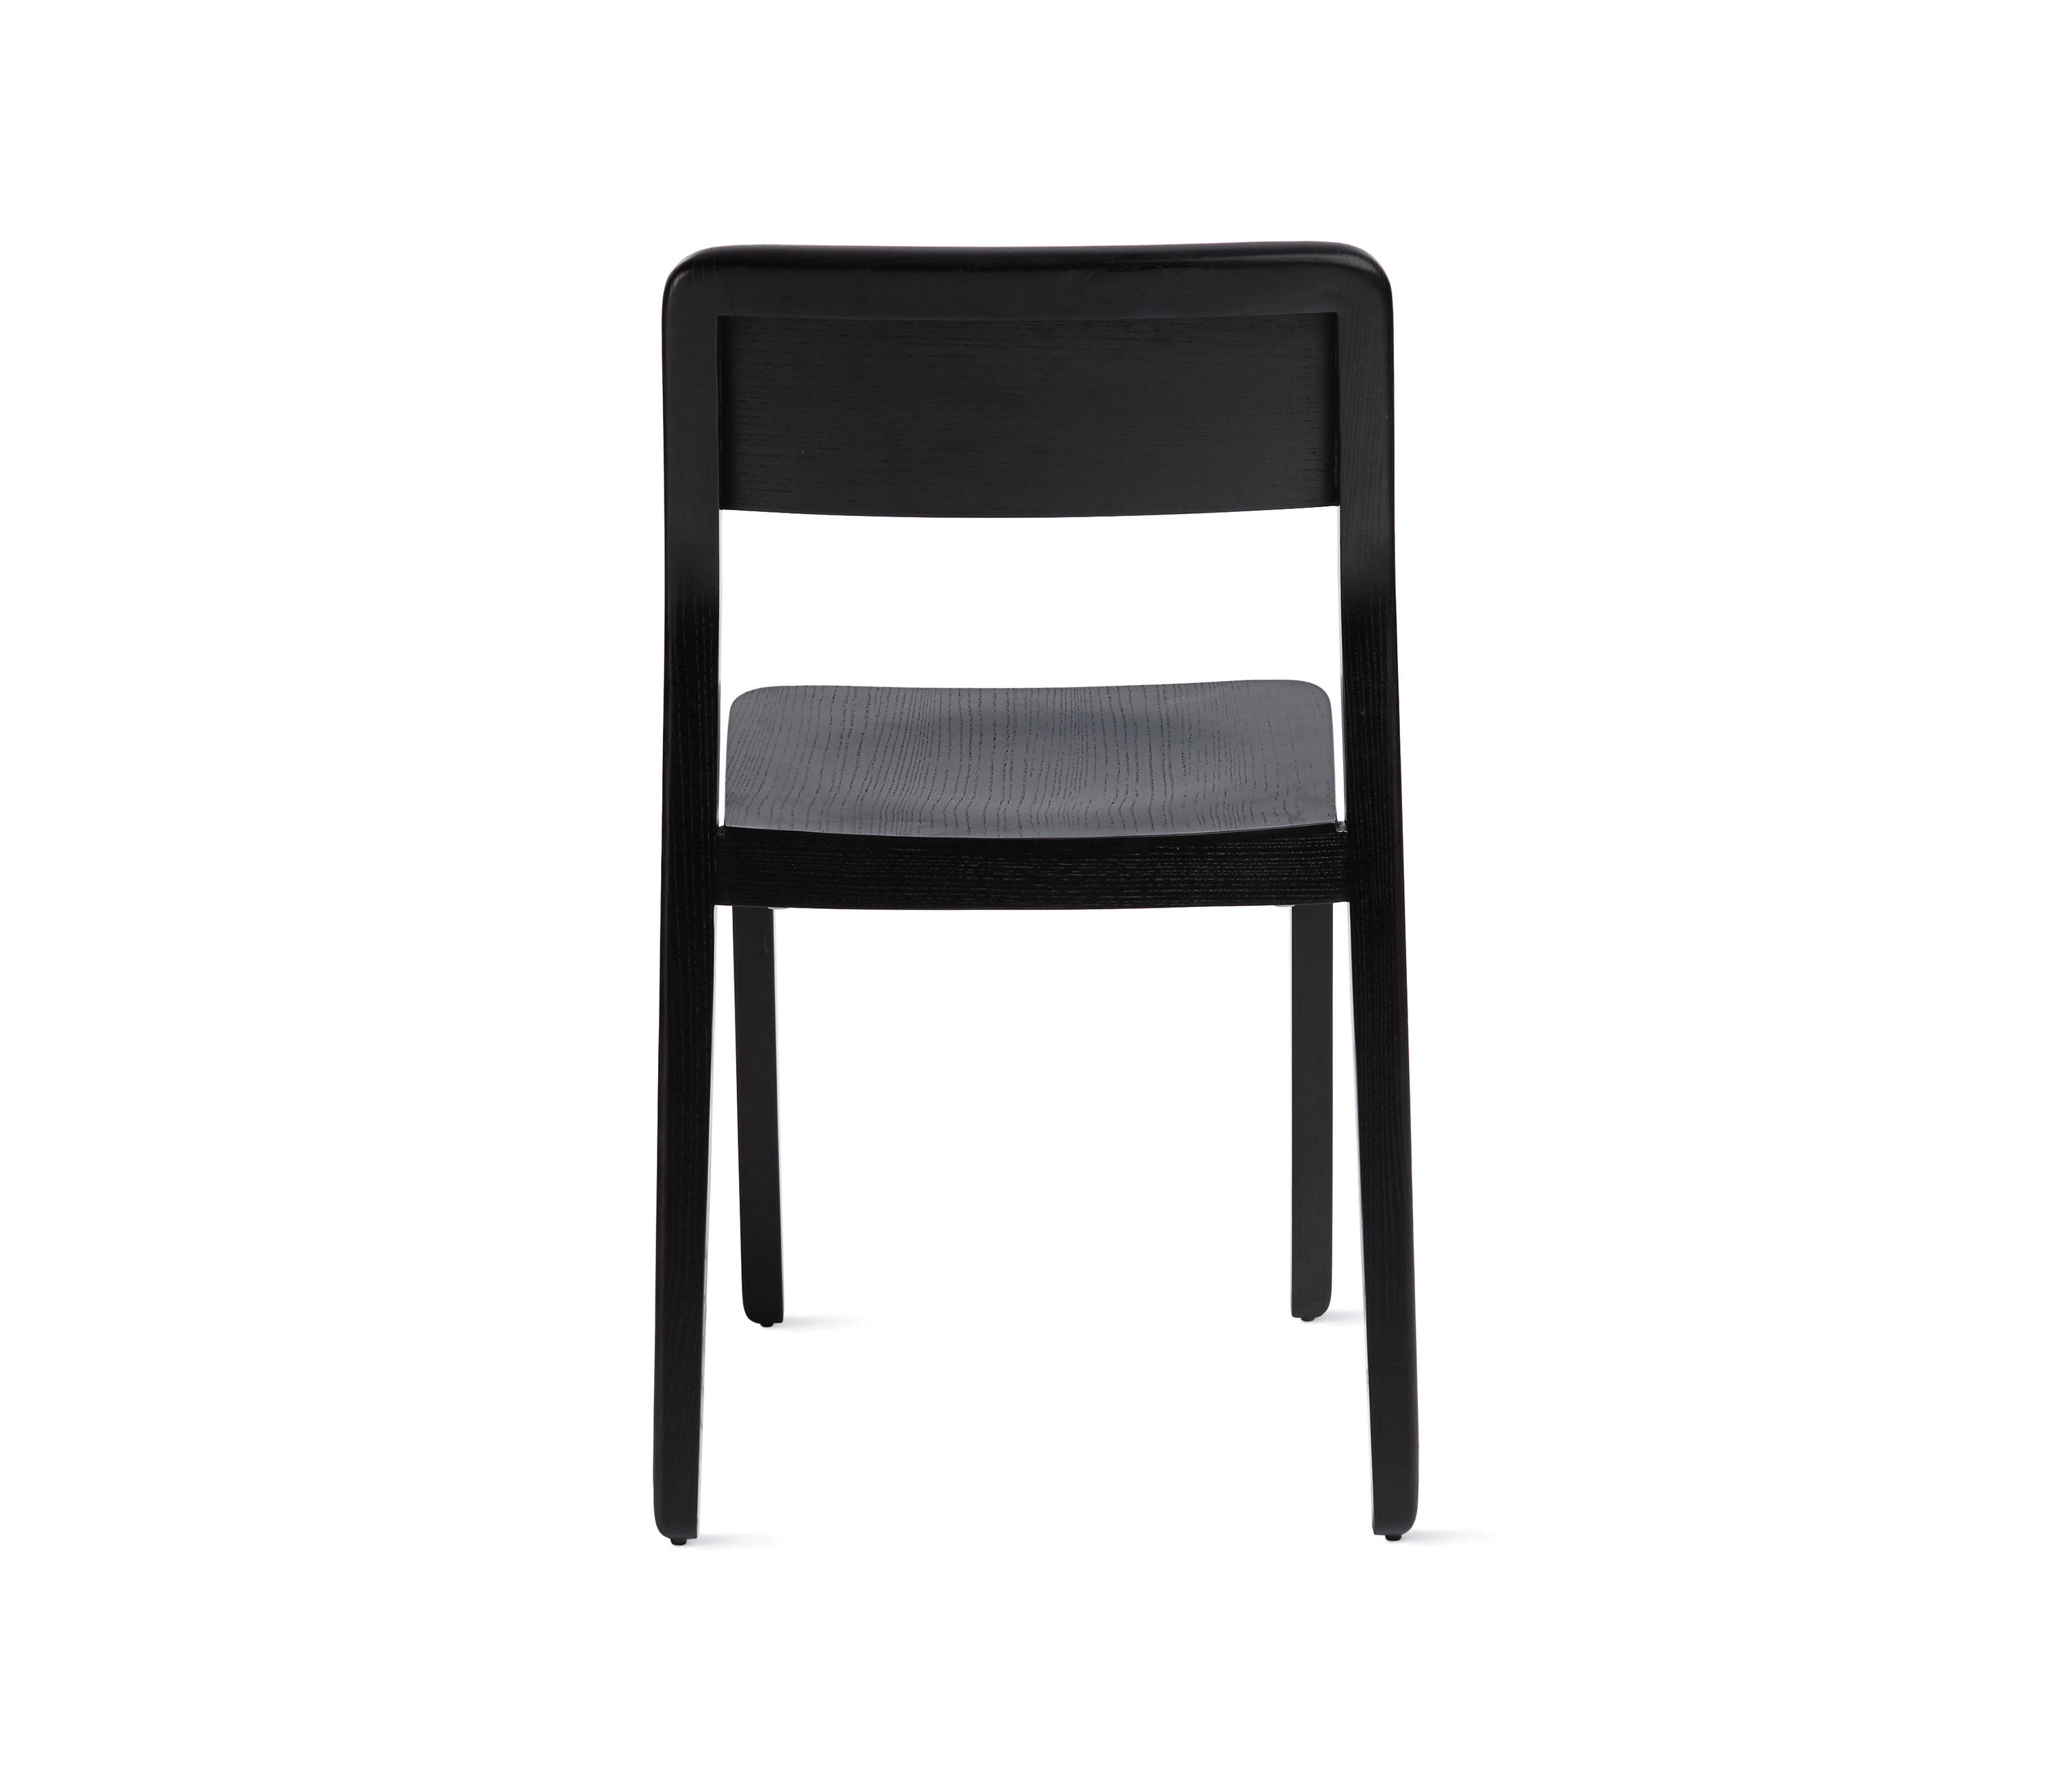 ... Note Chair by Design Within Reach | Chairs  sc 1 st  Architonic & NOTE CHAIR - Chairs from Design Within Reach | Architonic